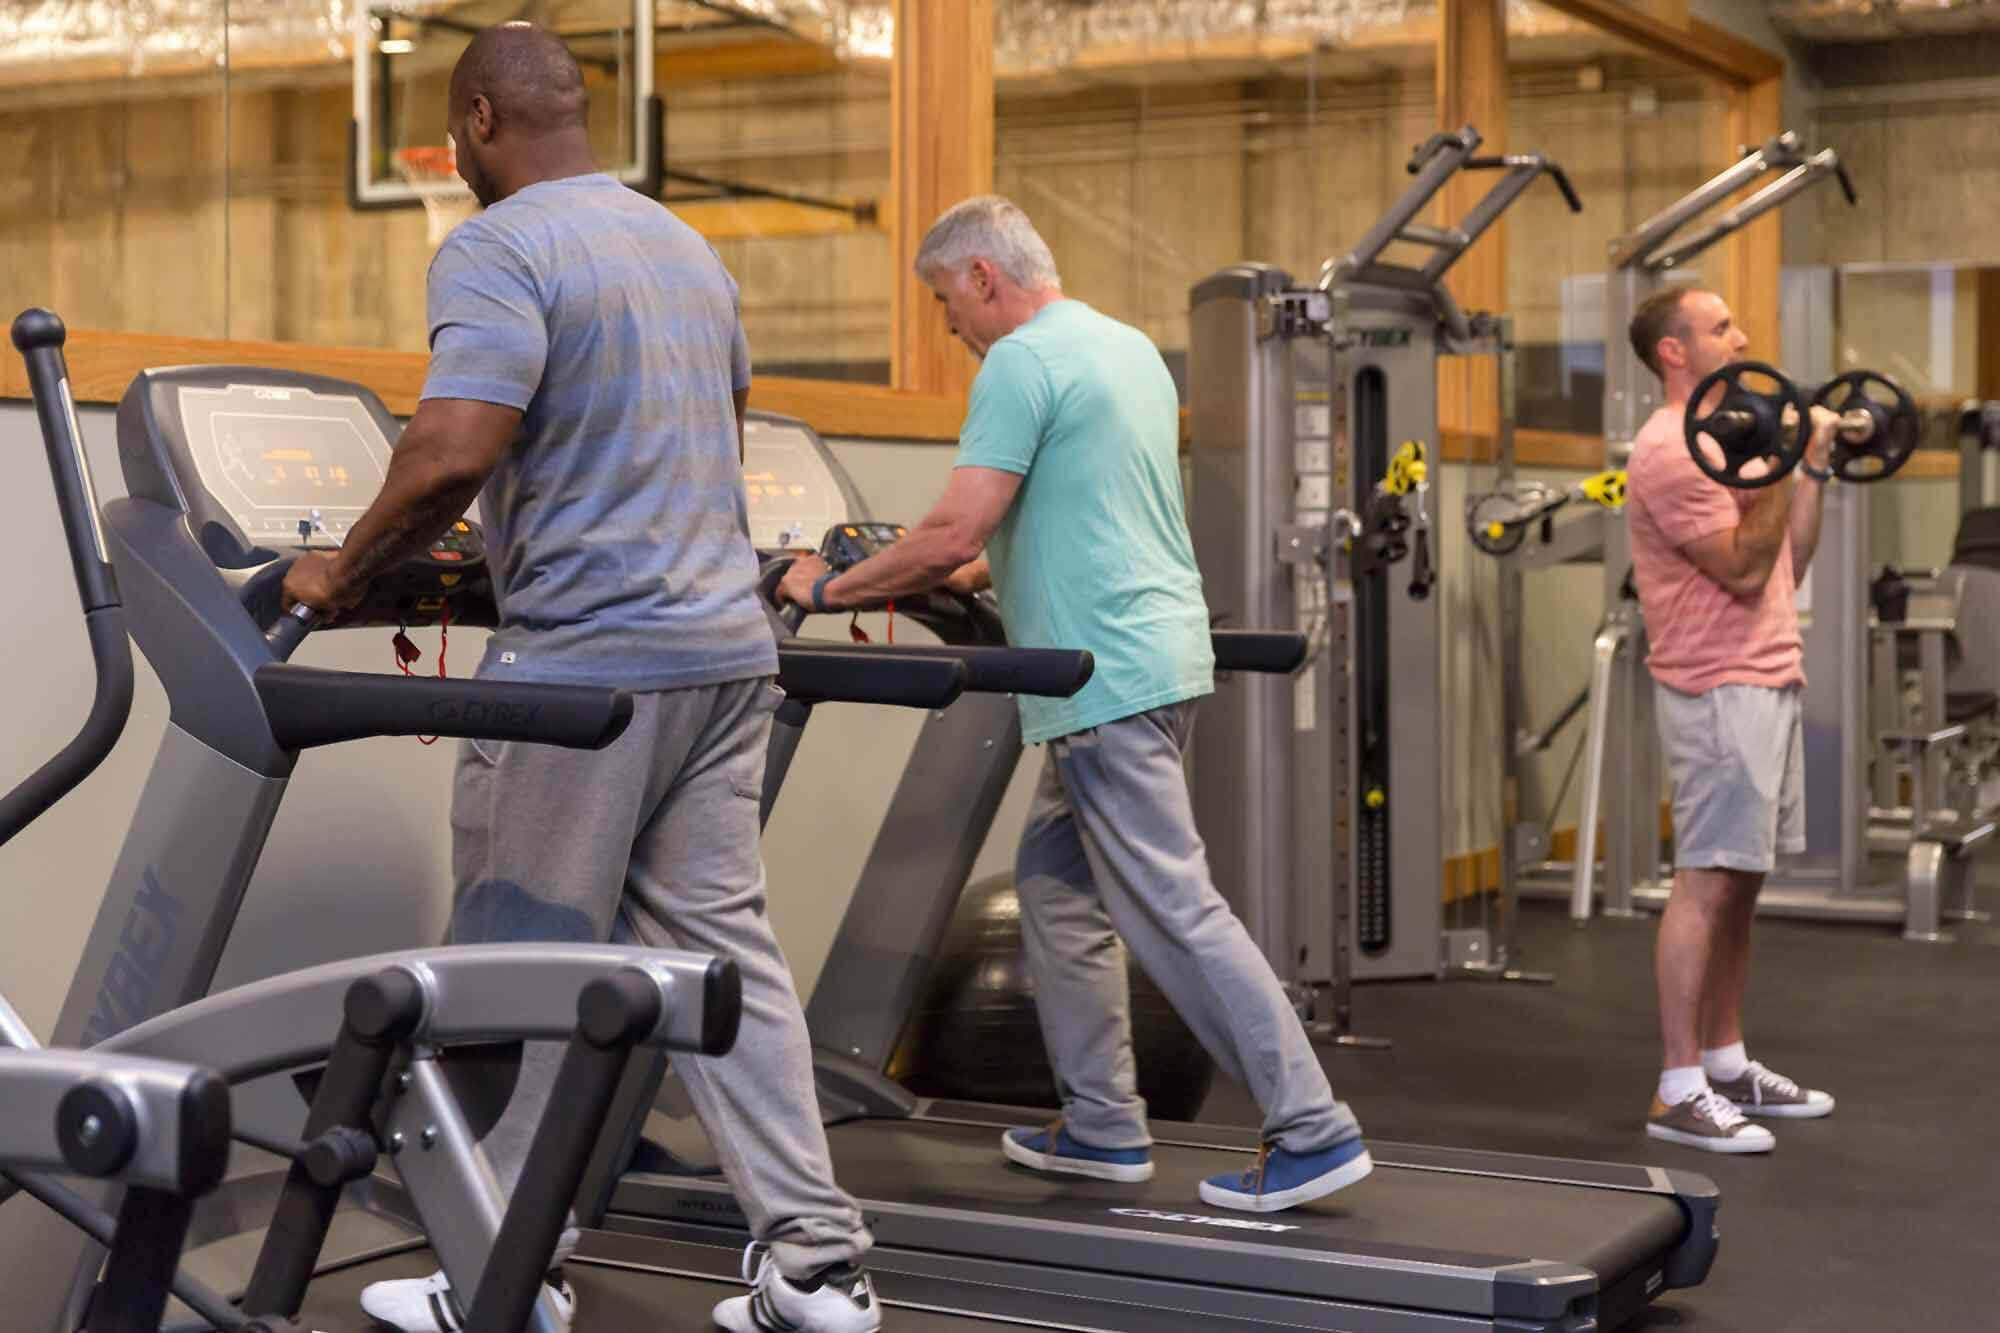 Men at Mountainside rehab's gym exercising to battle withdrawal symptoms.